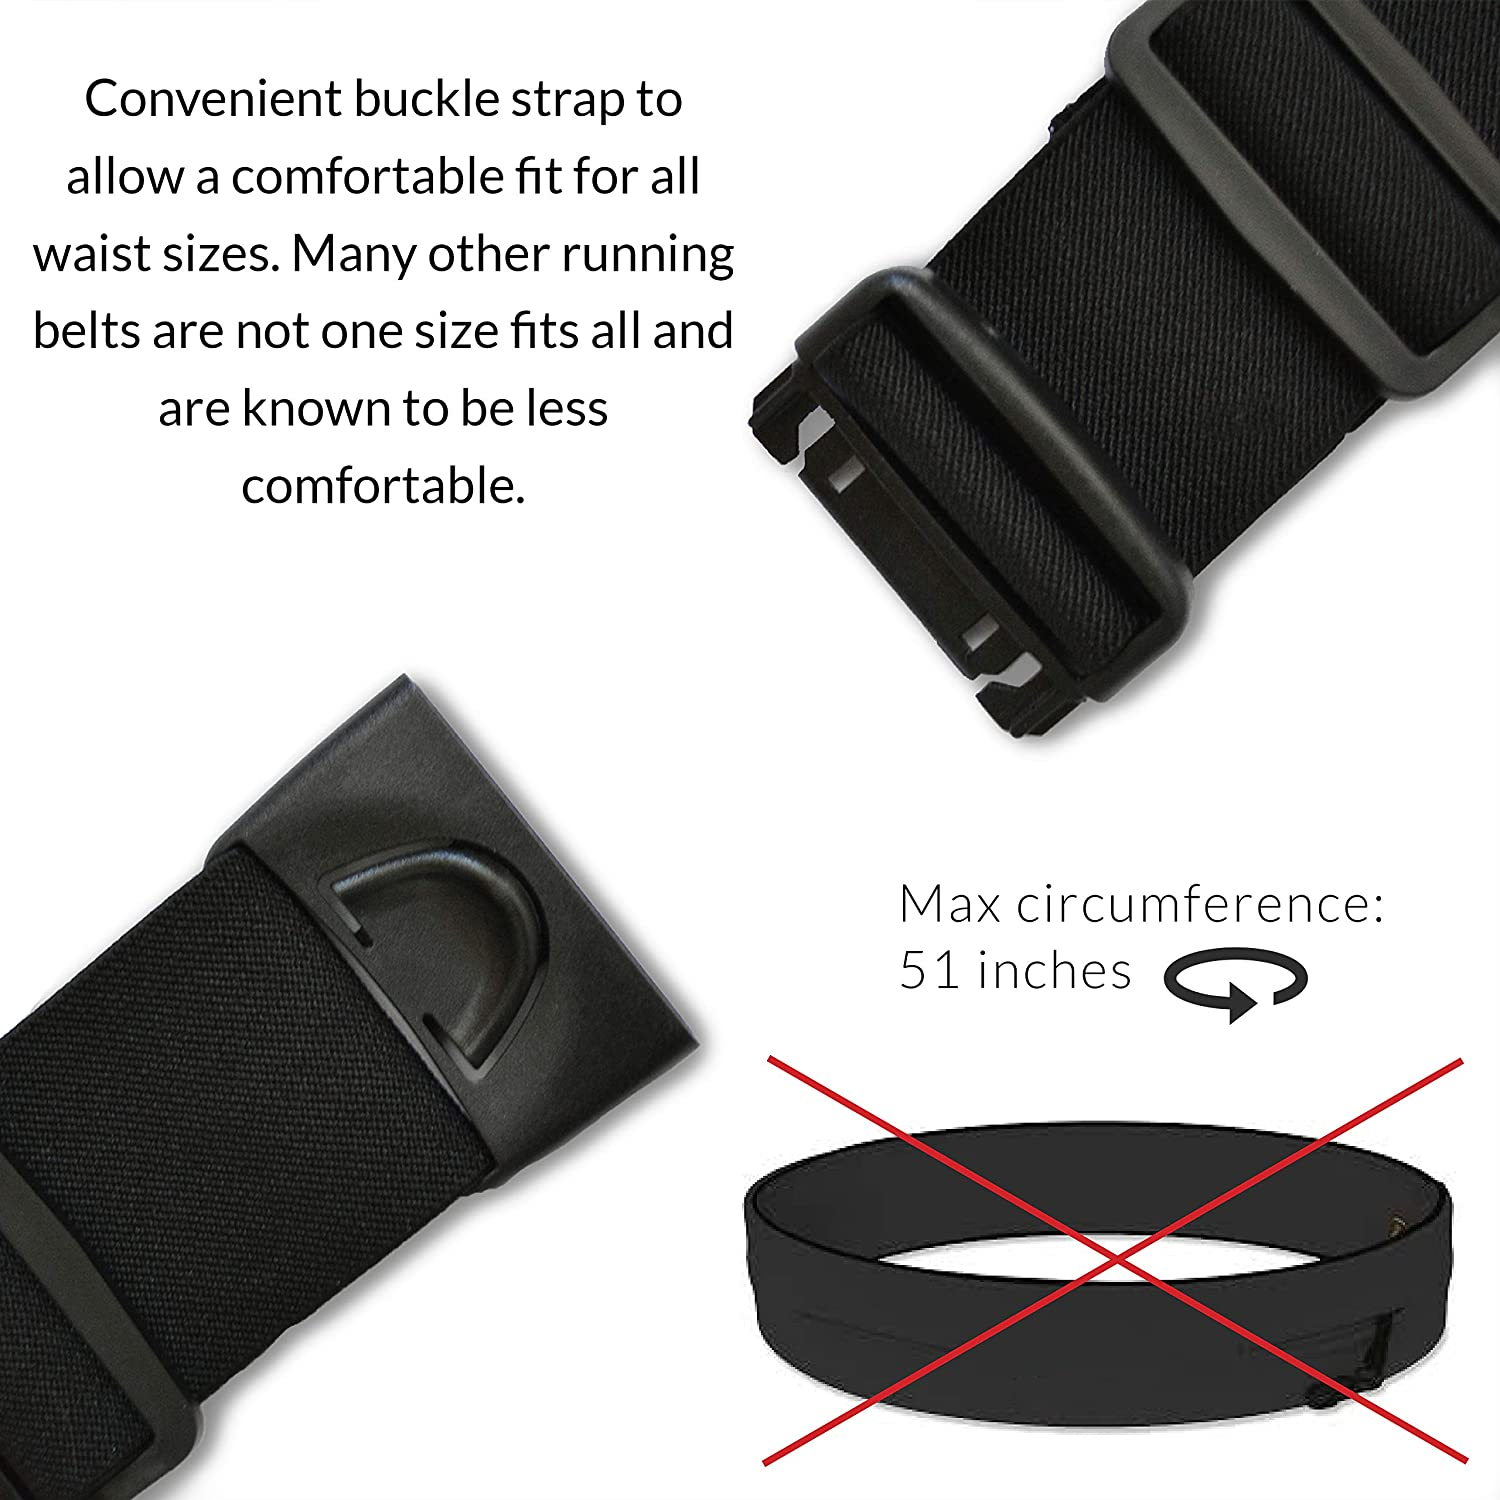 f53e72f1d17 E Tronic Edge Running Belts : Best Comfortable Running Belts That Fit All  Phone Models and Fit All Waist Sizes. for Running, Workouts, Cycling, ...